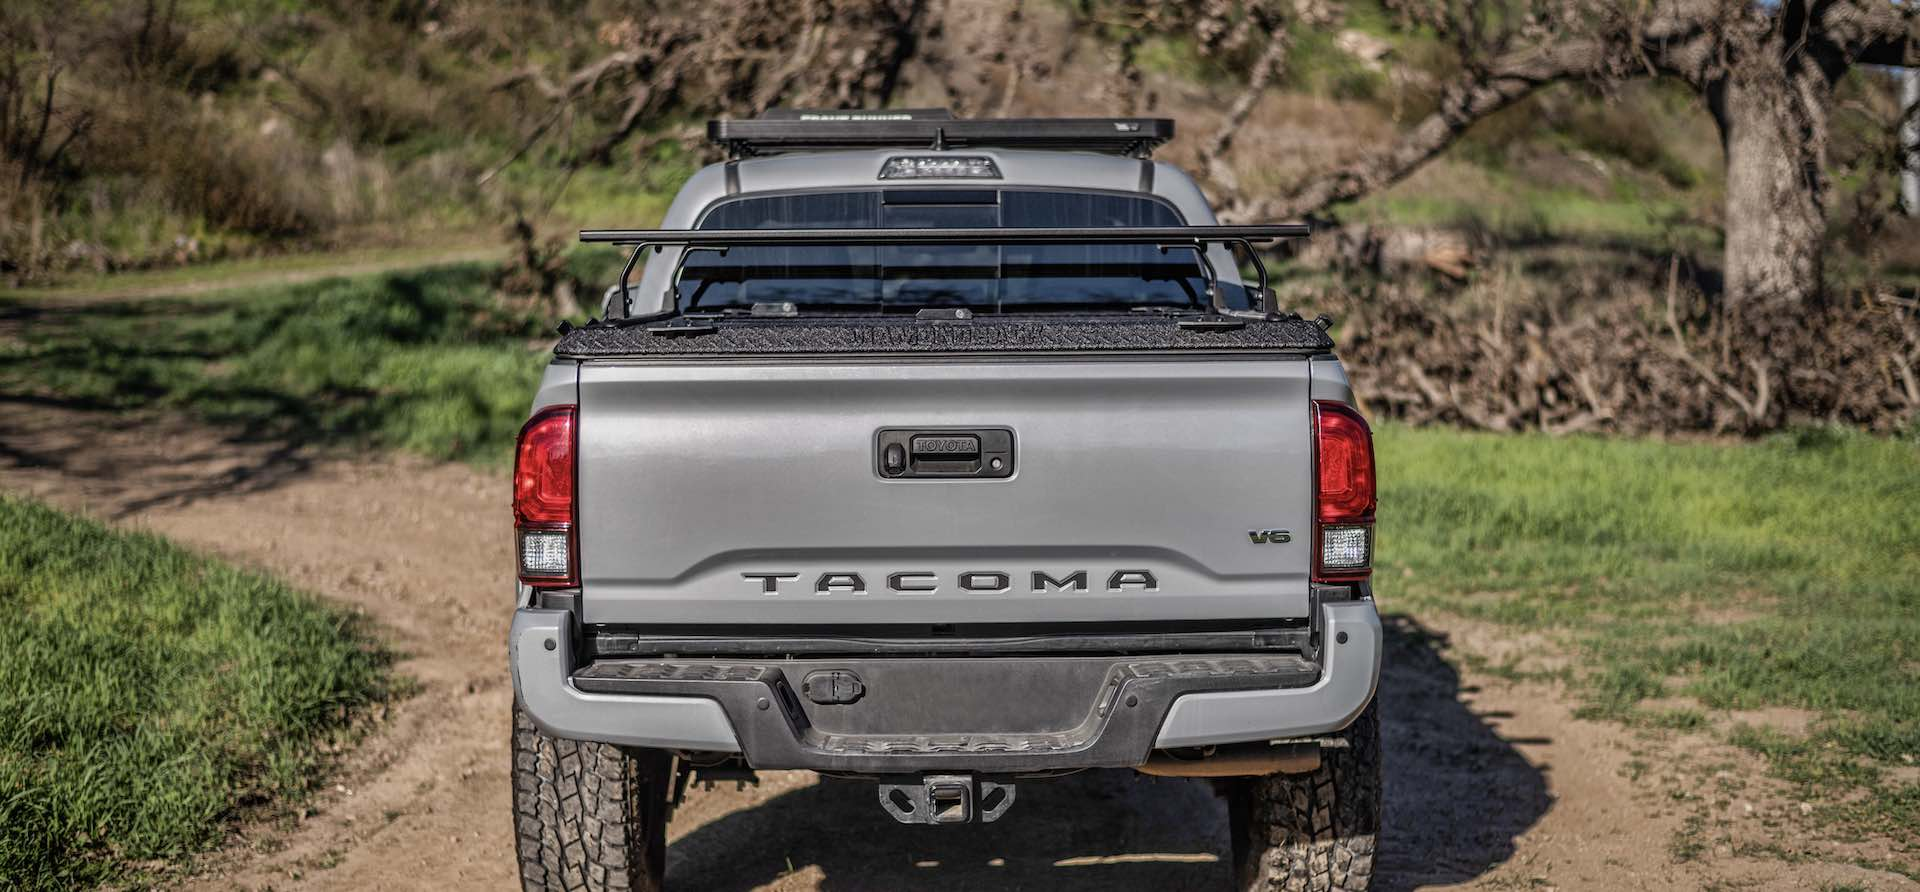 Rear view of Toyota Tacoma with DiamondBack HD and Front Runner Rack